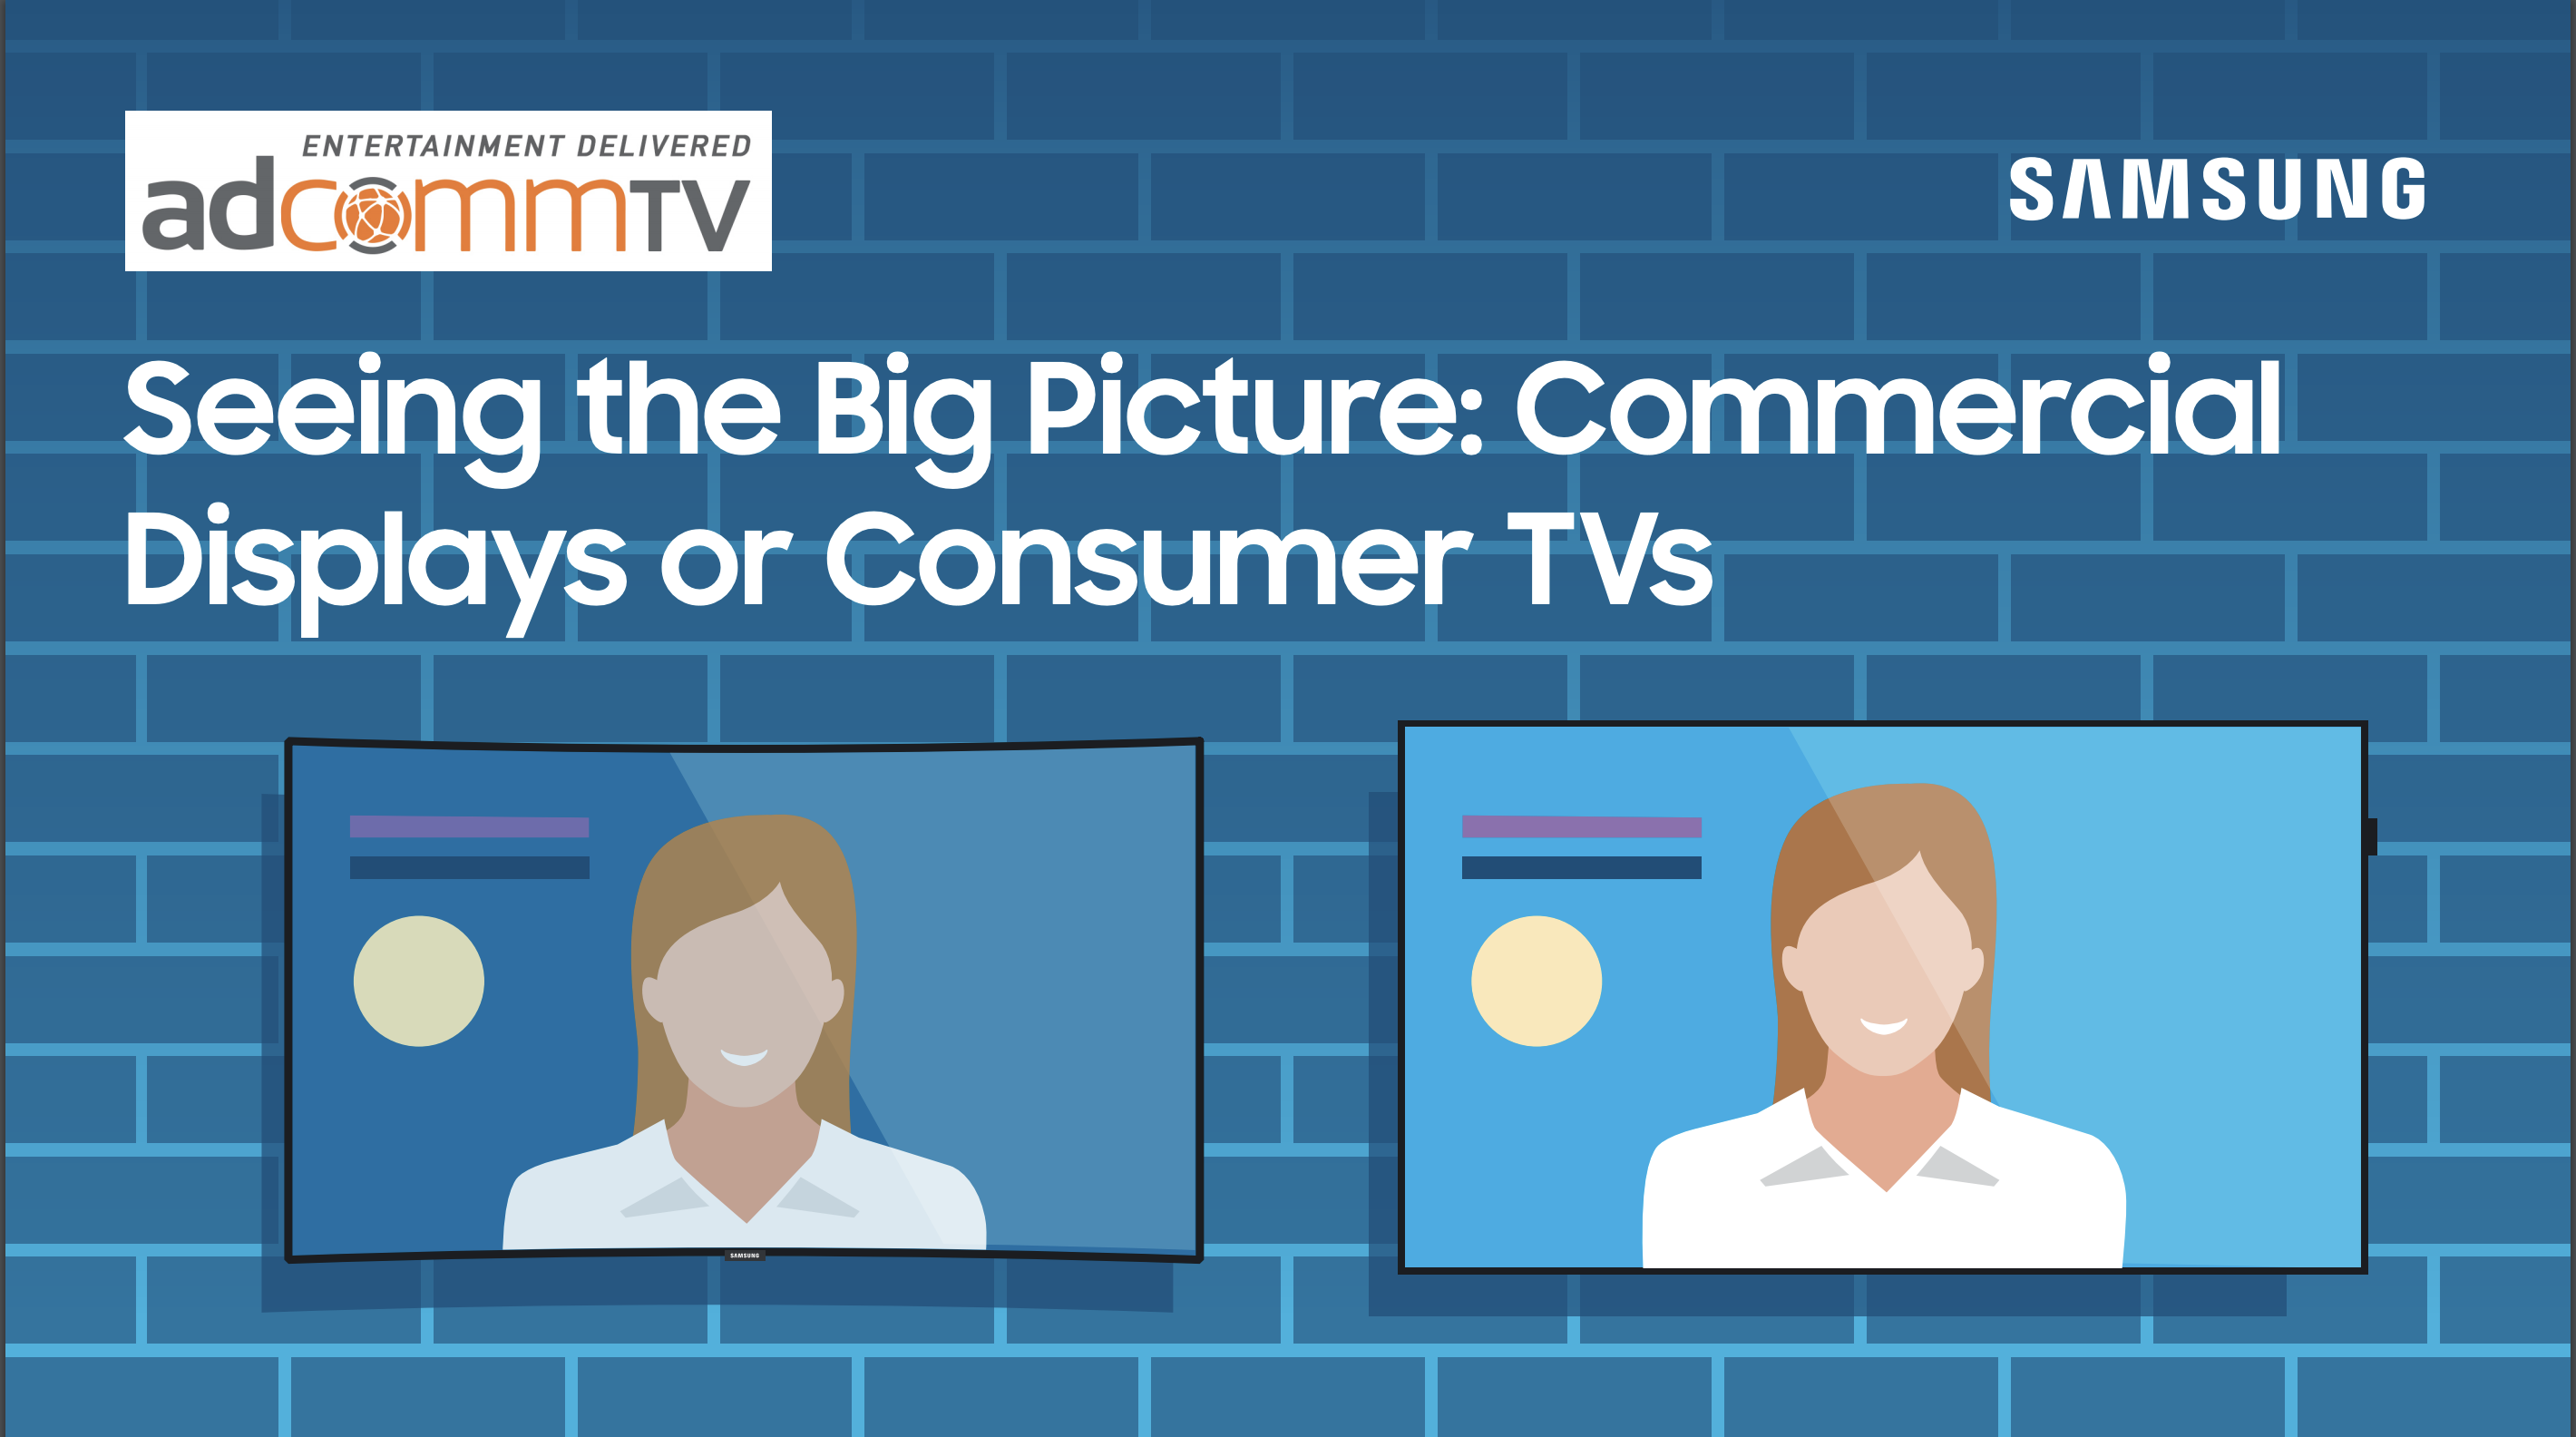 Seeing the Big Picture: Commerical Displays or Consumer TVs